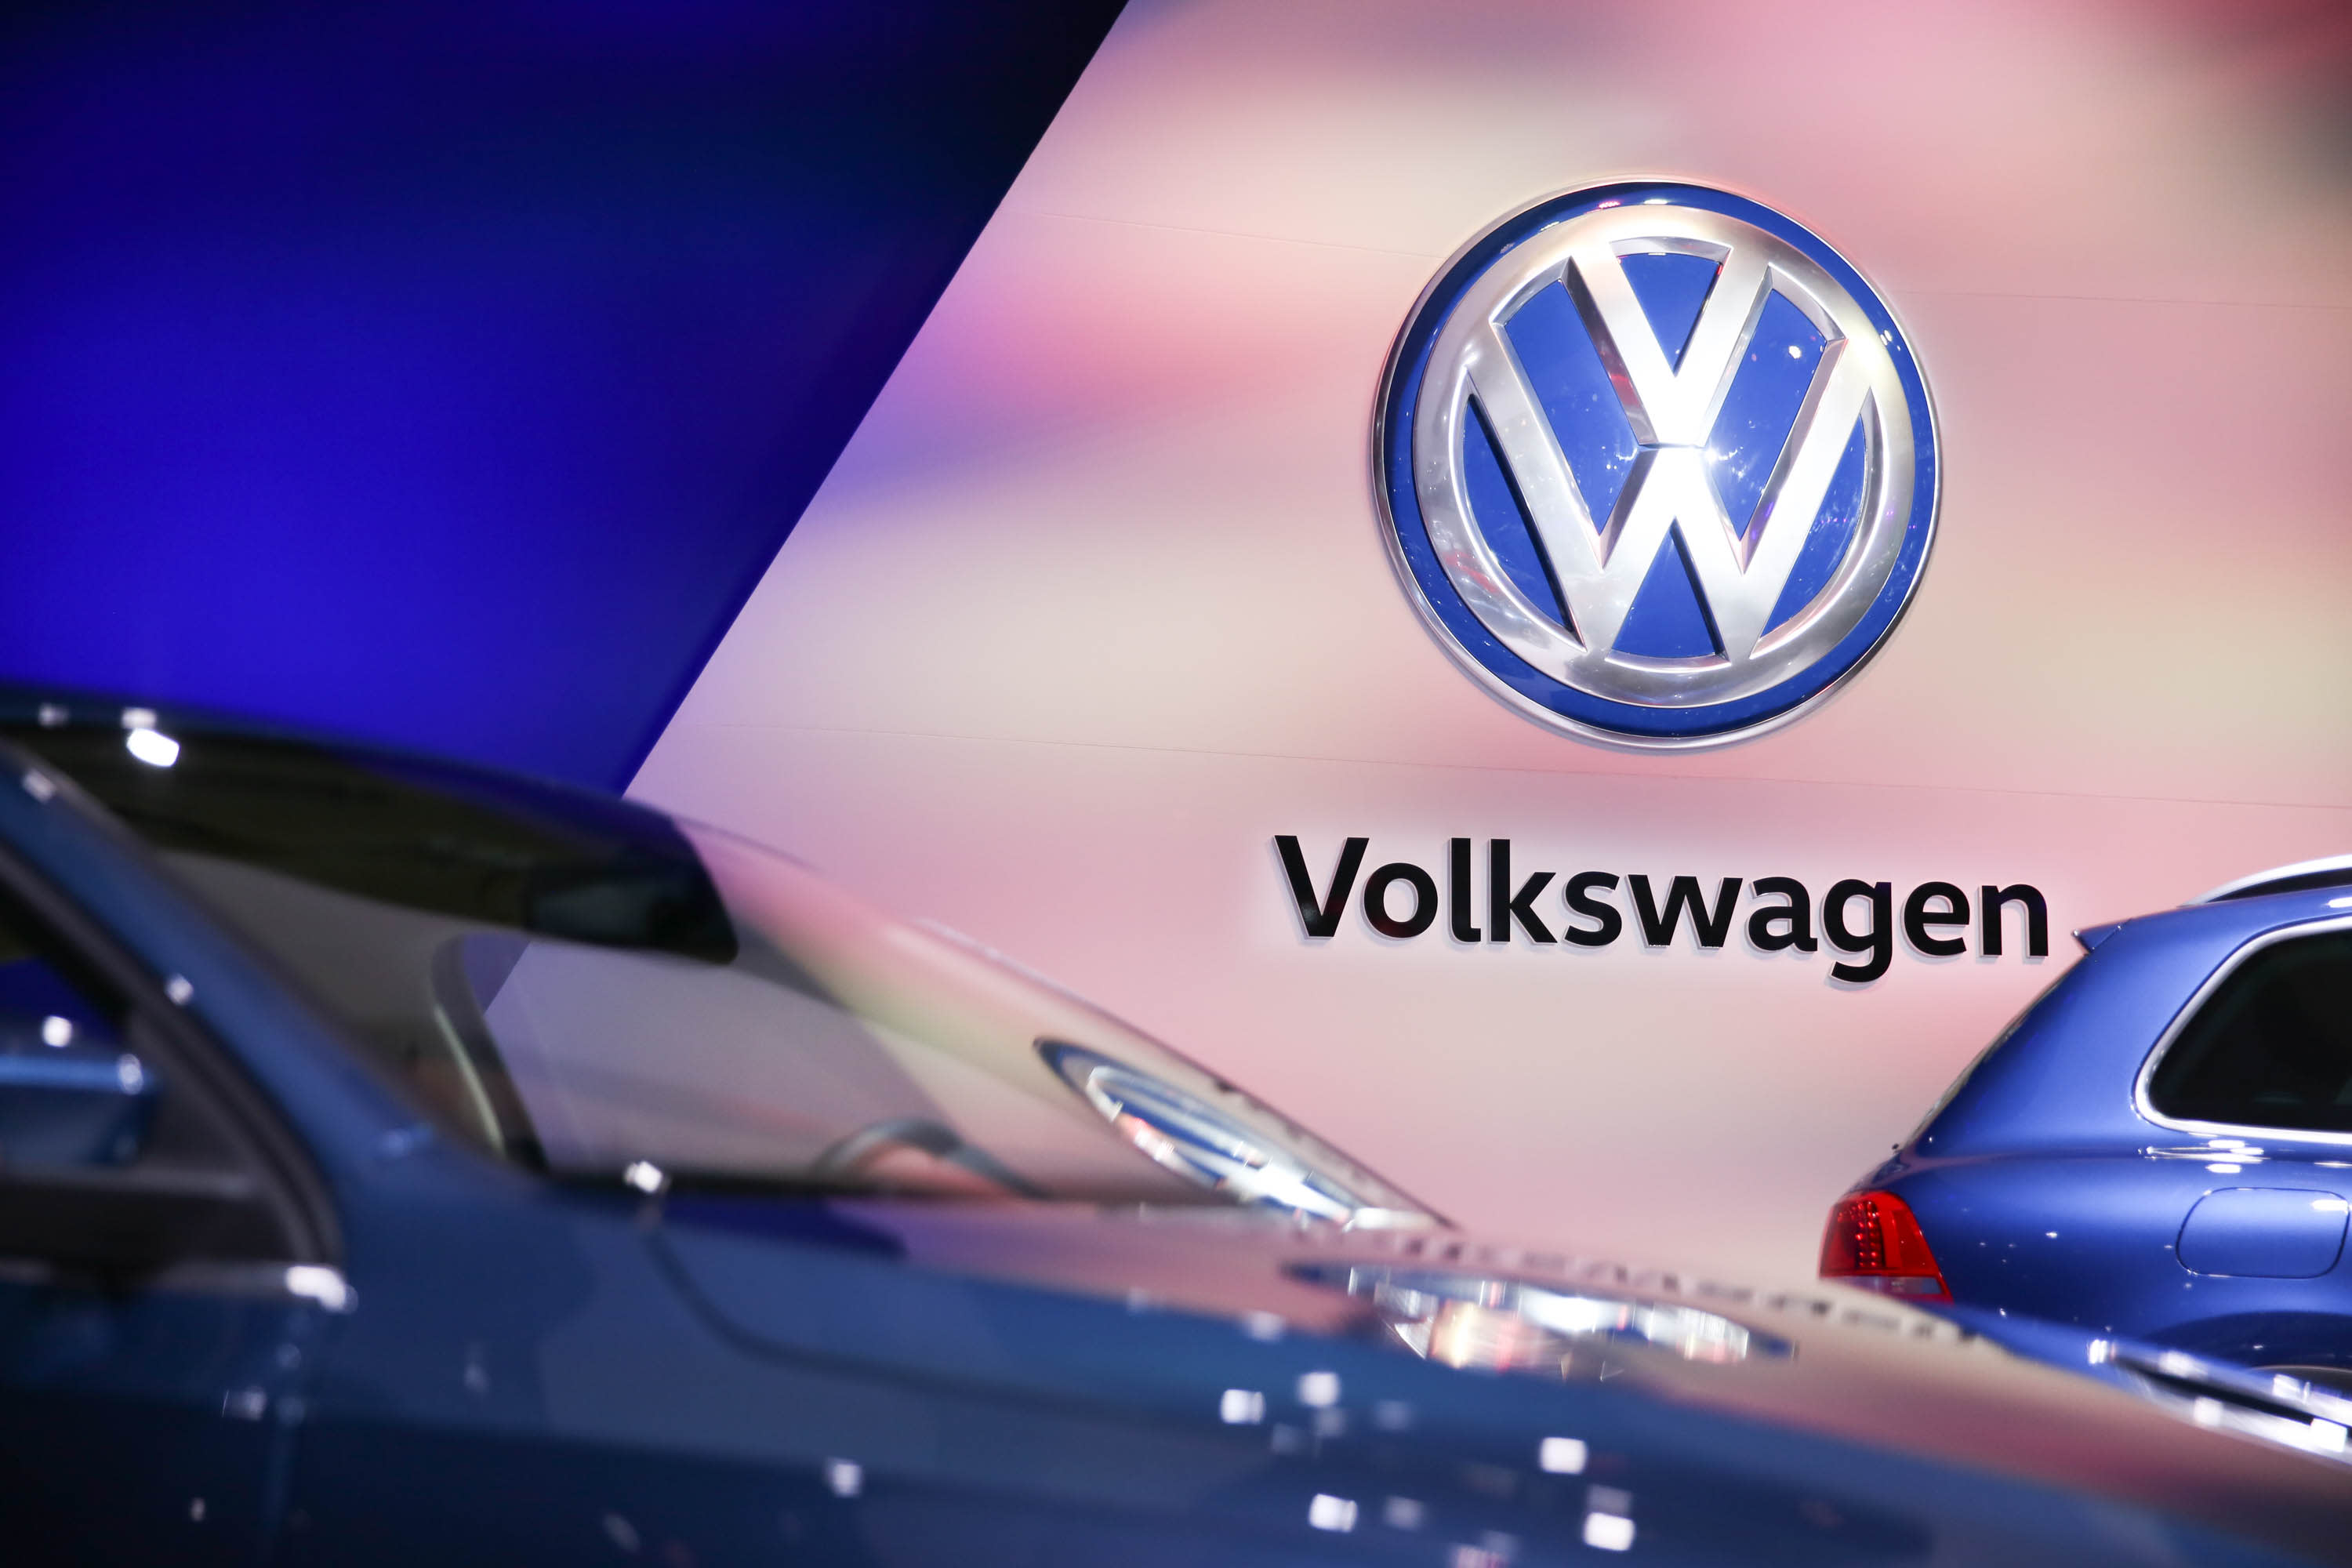 Volkswagen's name change of U.S. operations to 'Voltswagen' was April Fool's marketing prank, source says